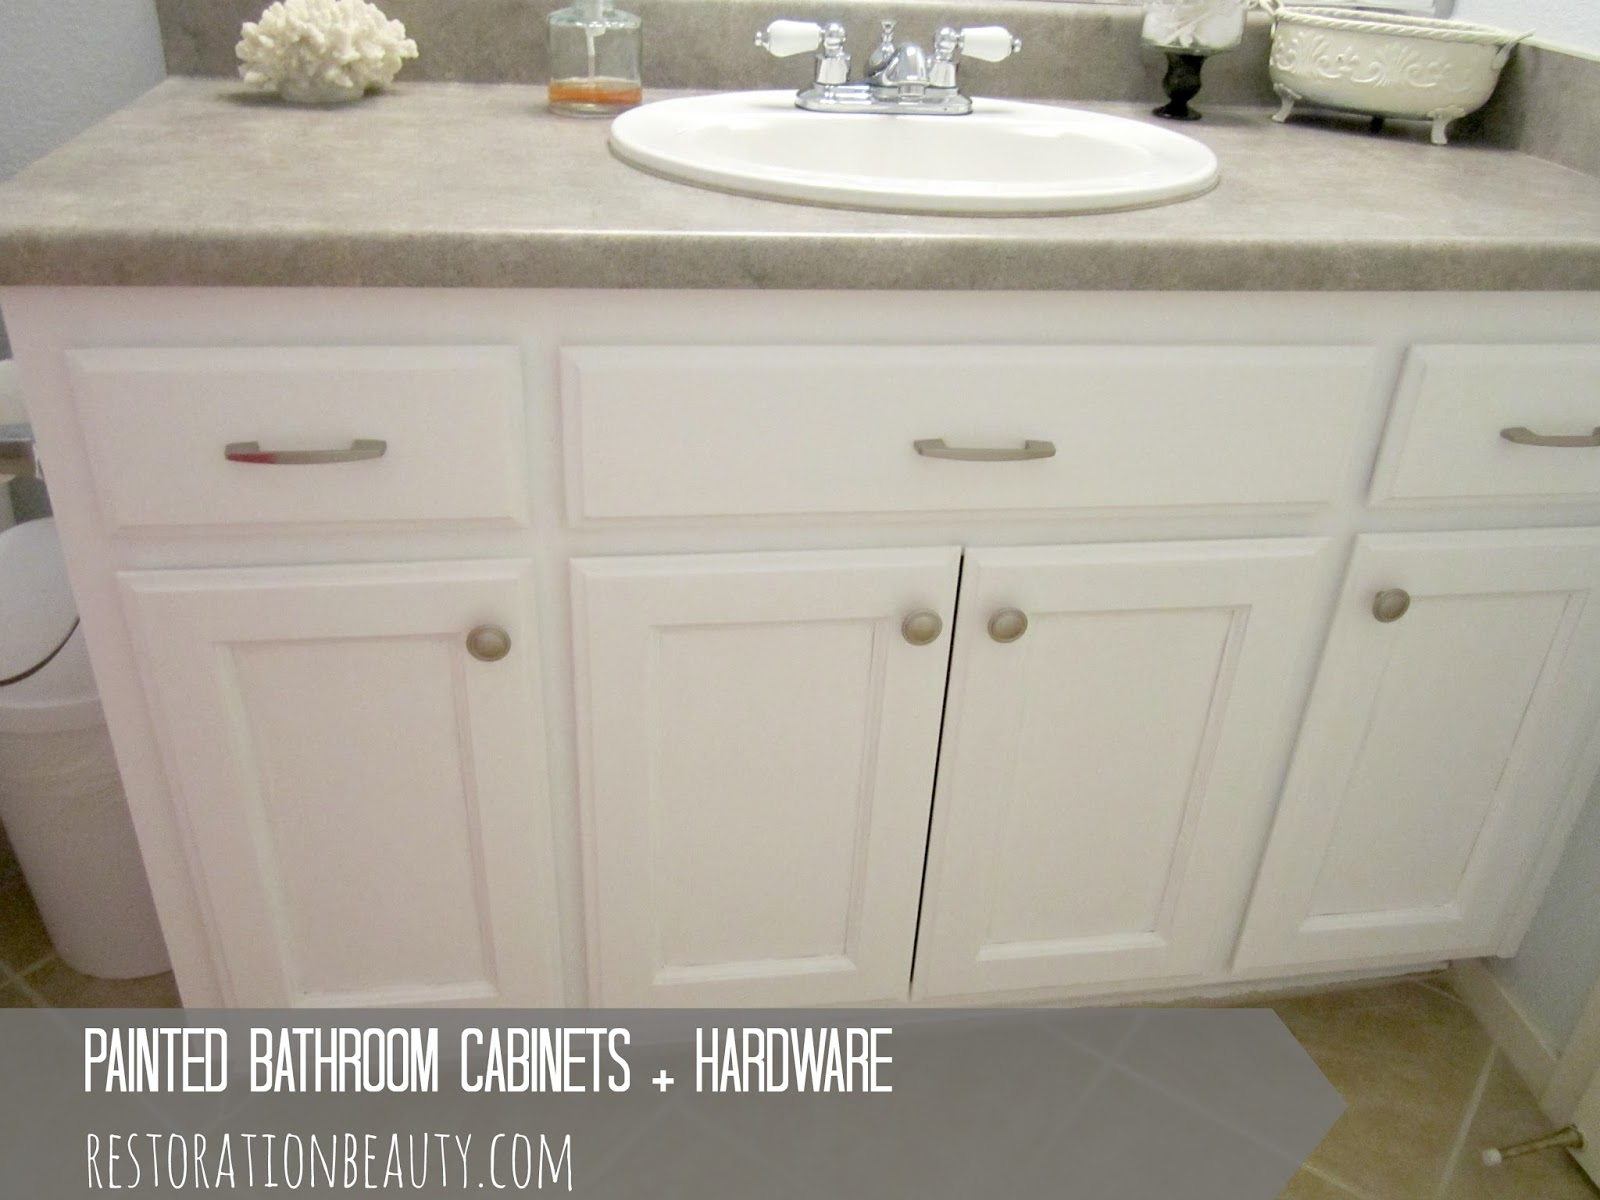 Restoration Beauty: Painted Bathroom Cabinets + Hardware